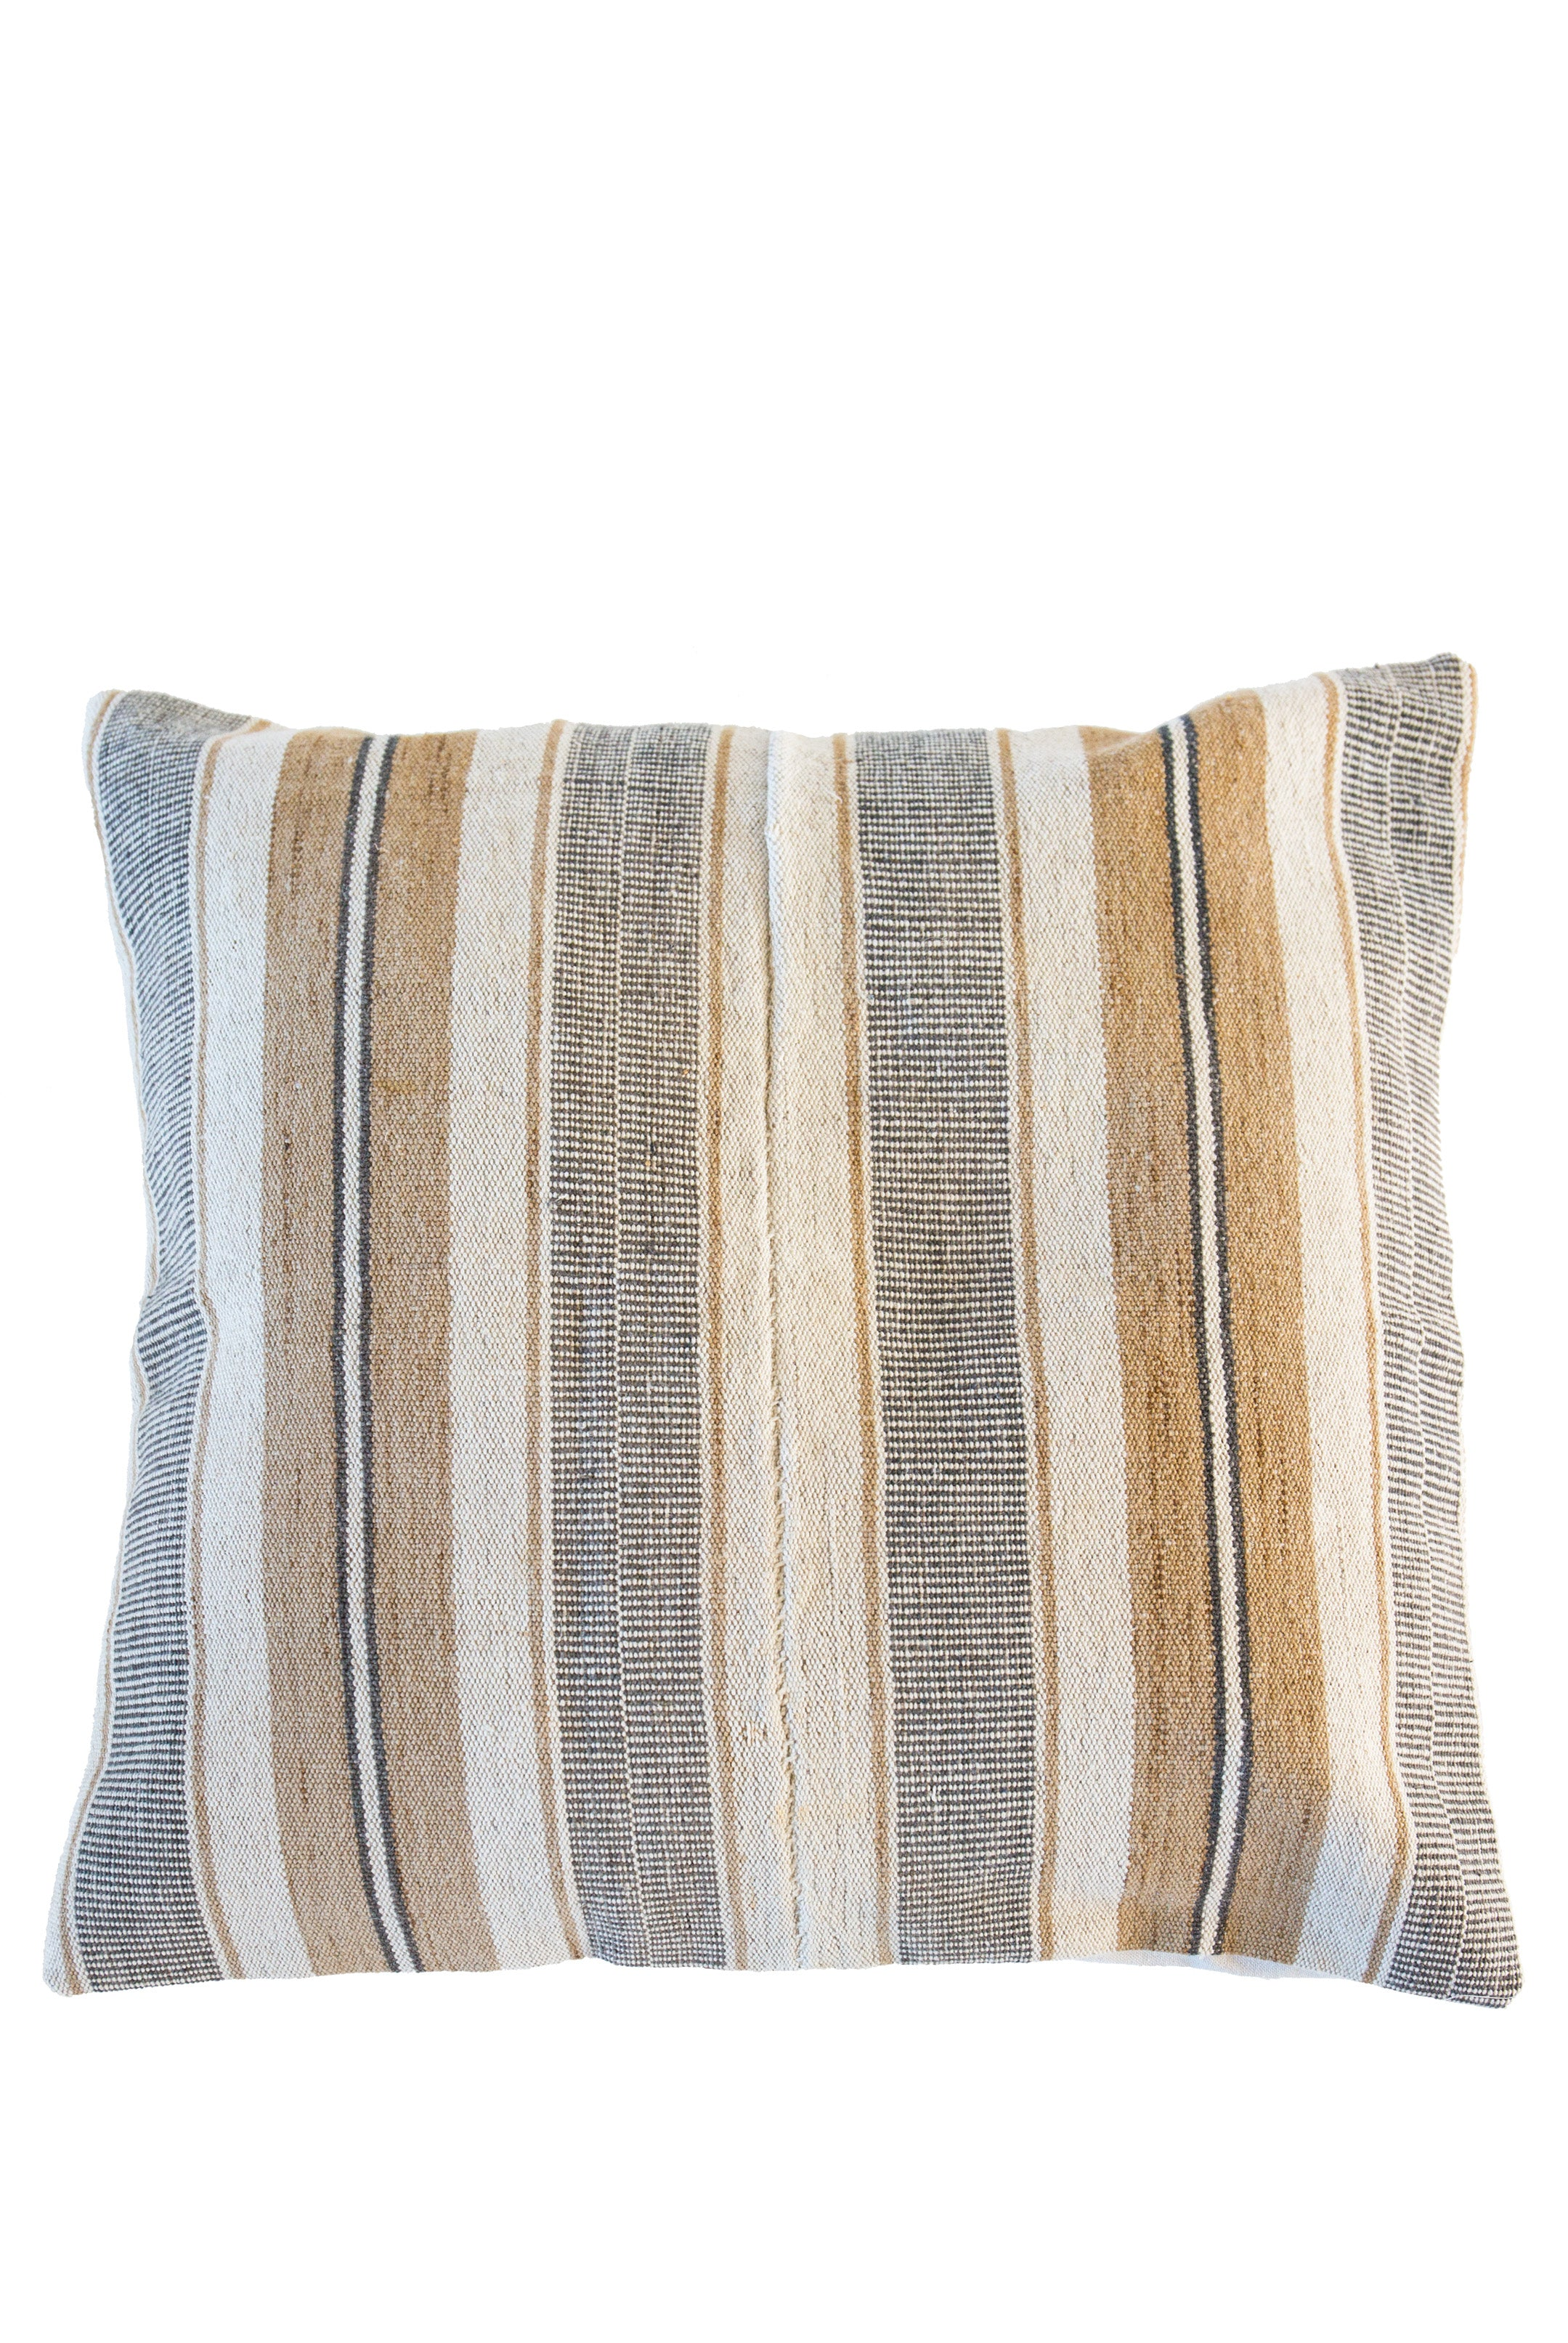 Weavers Turkish Kilim Cushion